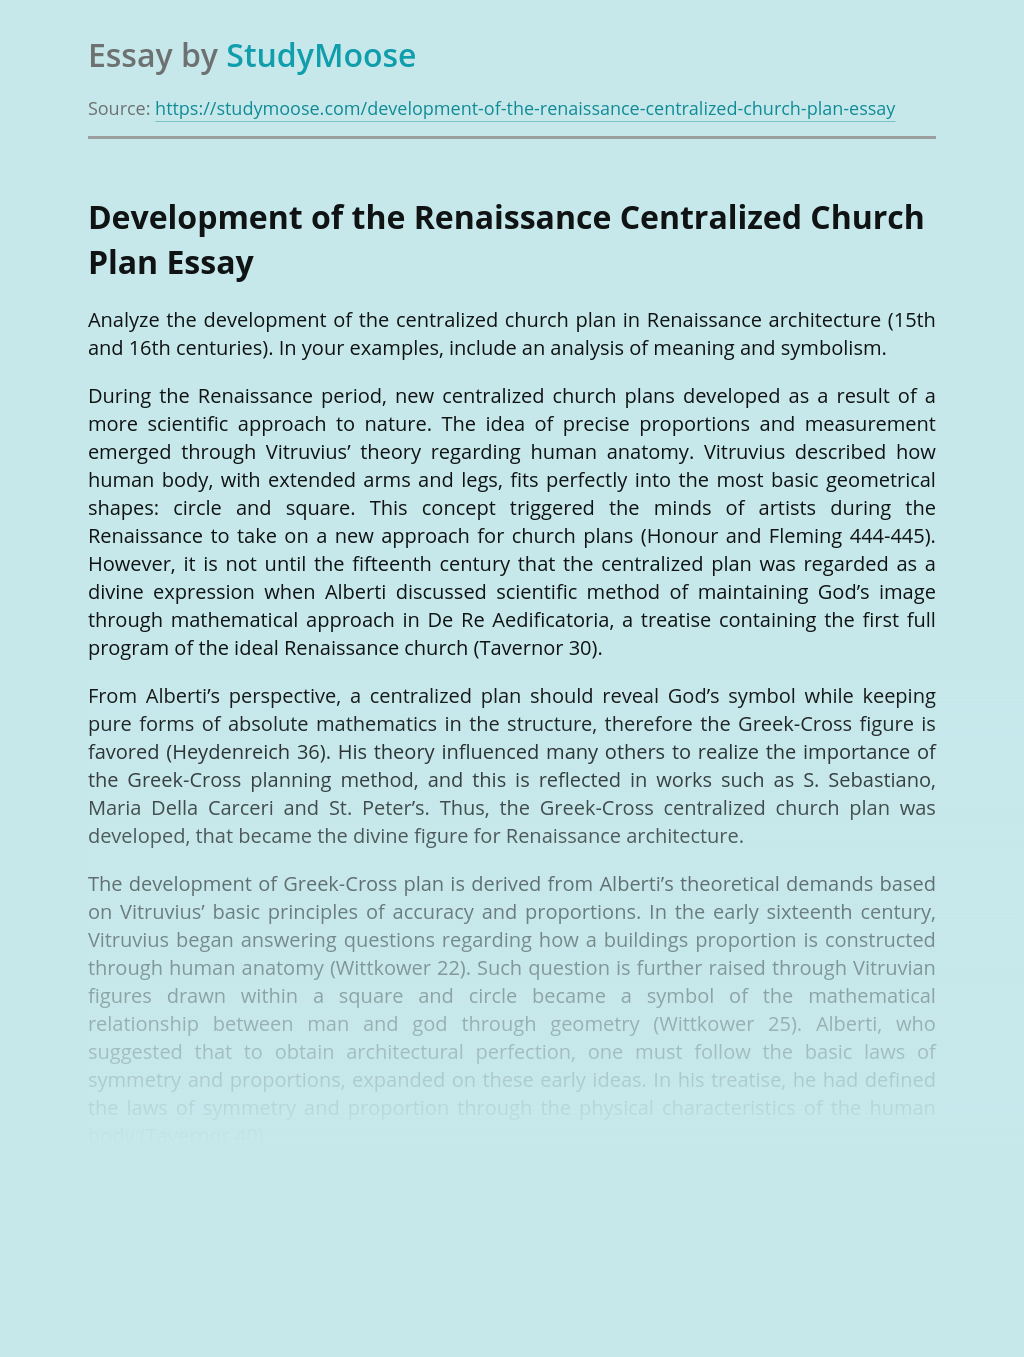 Development of the Renaissance Centralized Church Plan